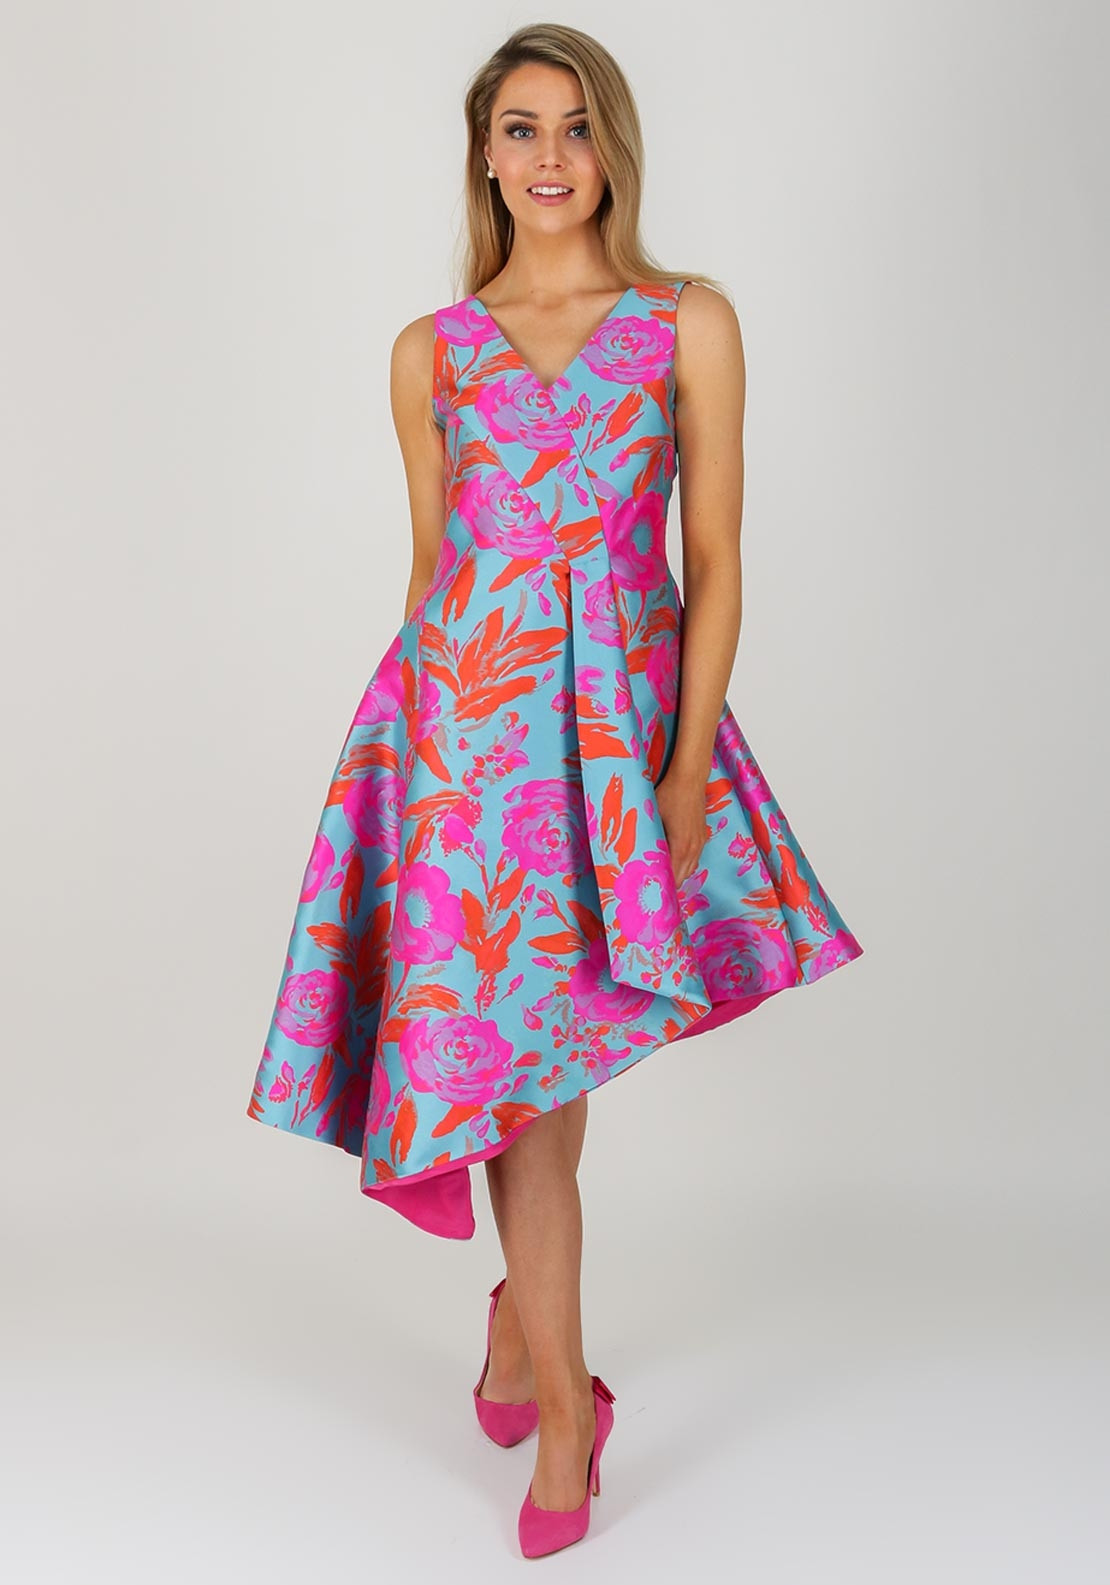 Kate Cooper Floral Flared Dress Blue Amp Pink Mcelhinneys